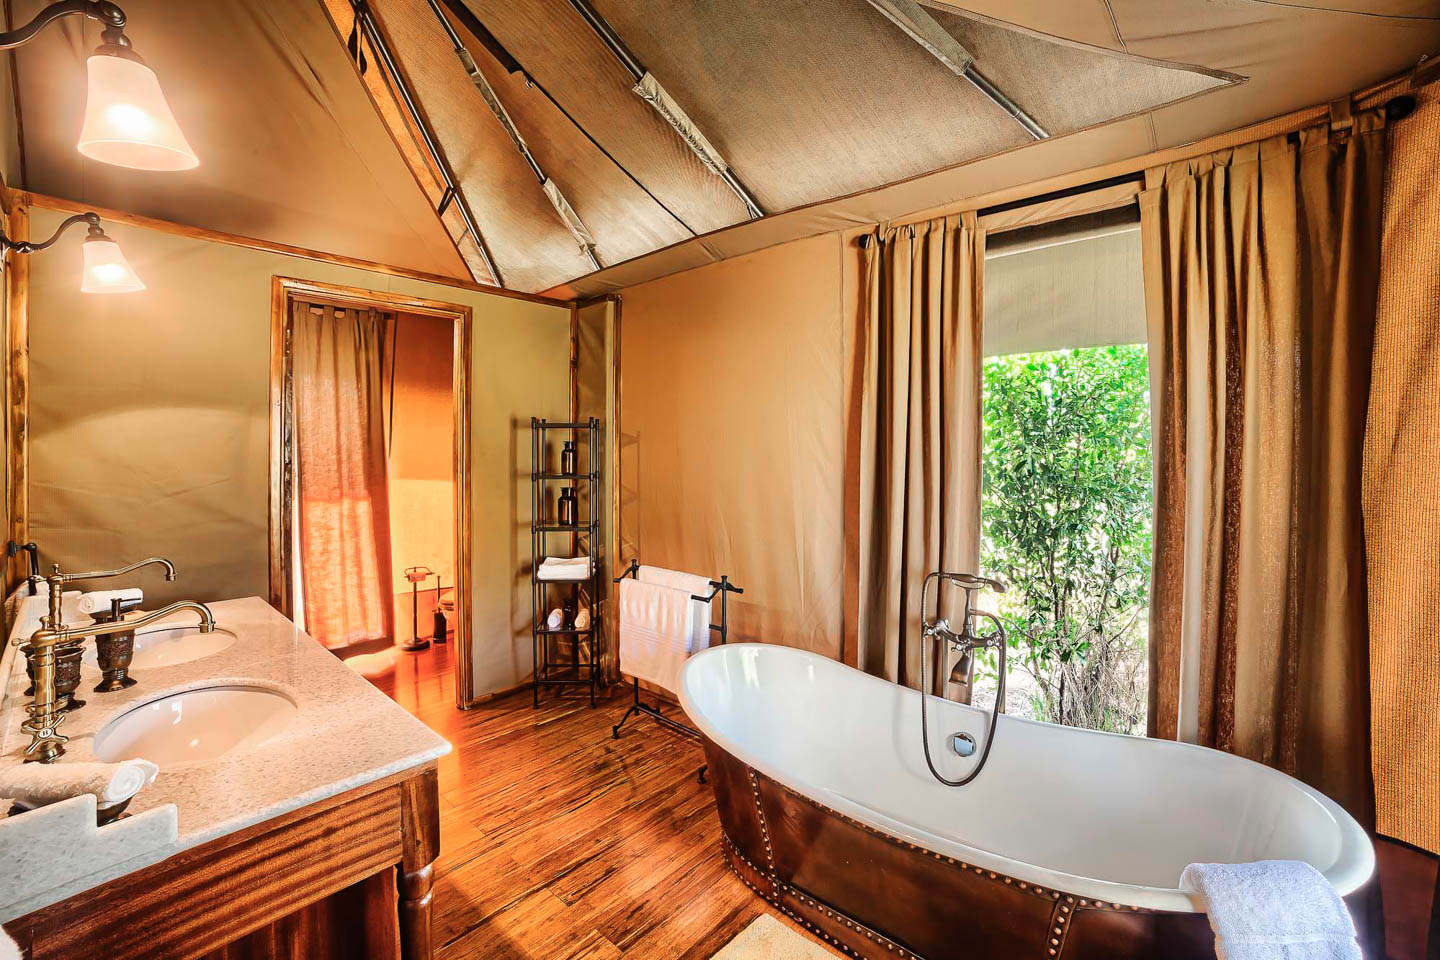 romantic lodges in Africa sand river selous lodge bathtub romantic